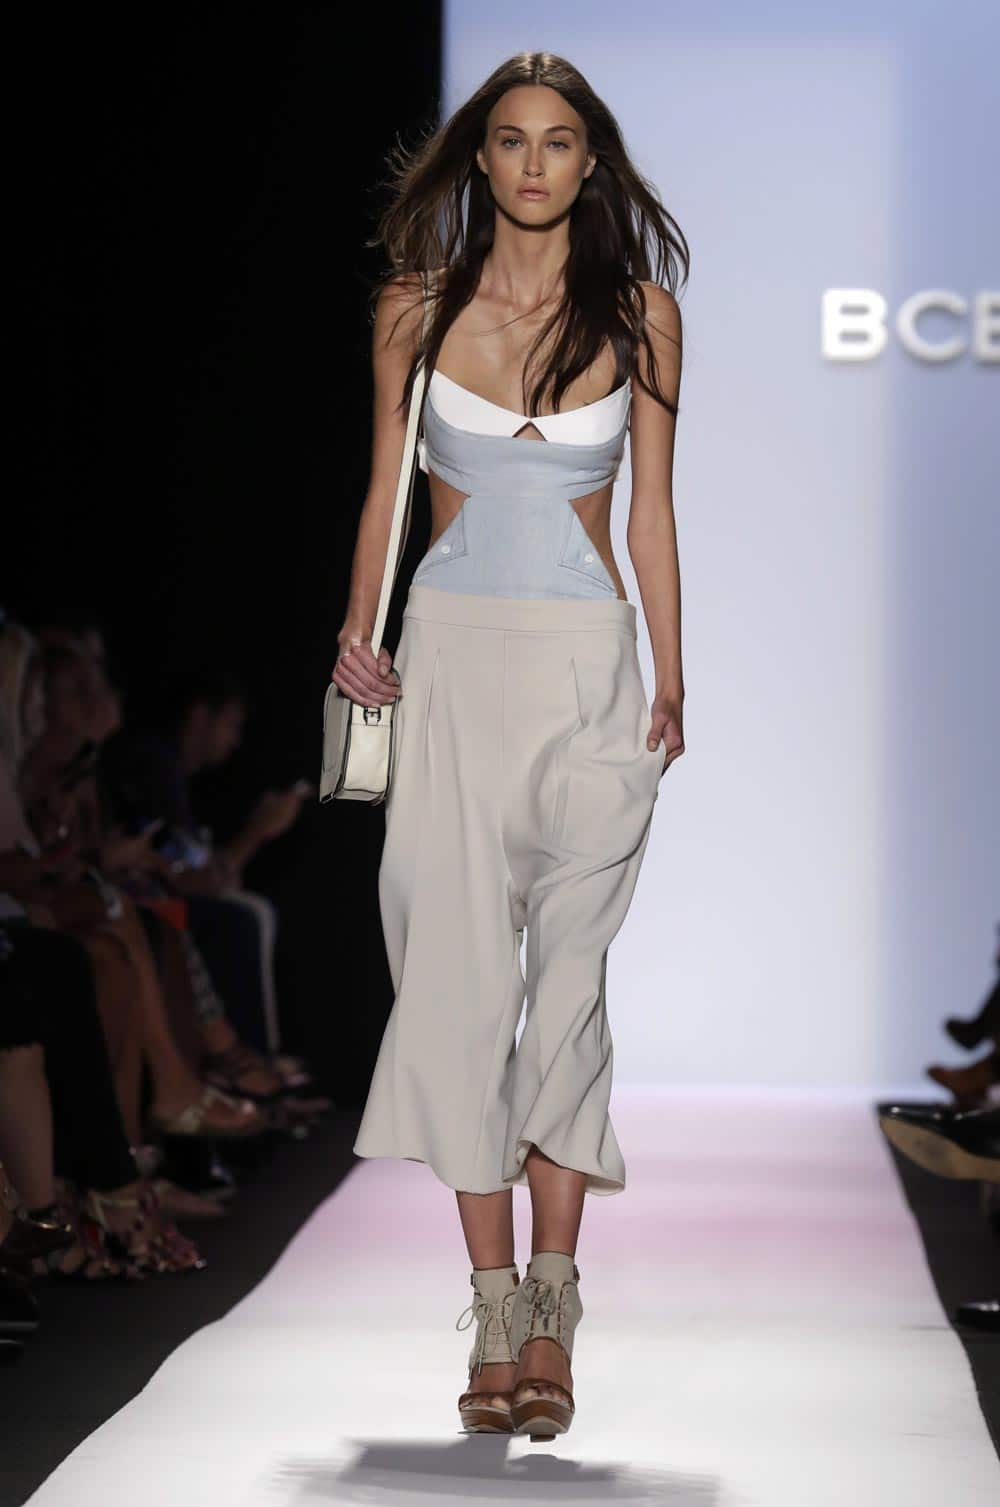 The BCBG MAX AZRIA Spring 2014 collection is modeled during Fashion Week in New York.